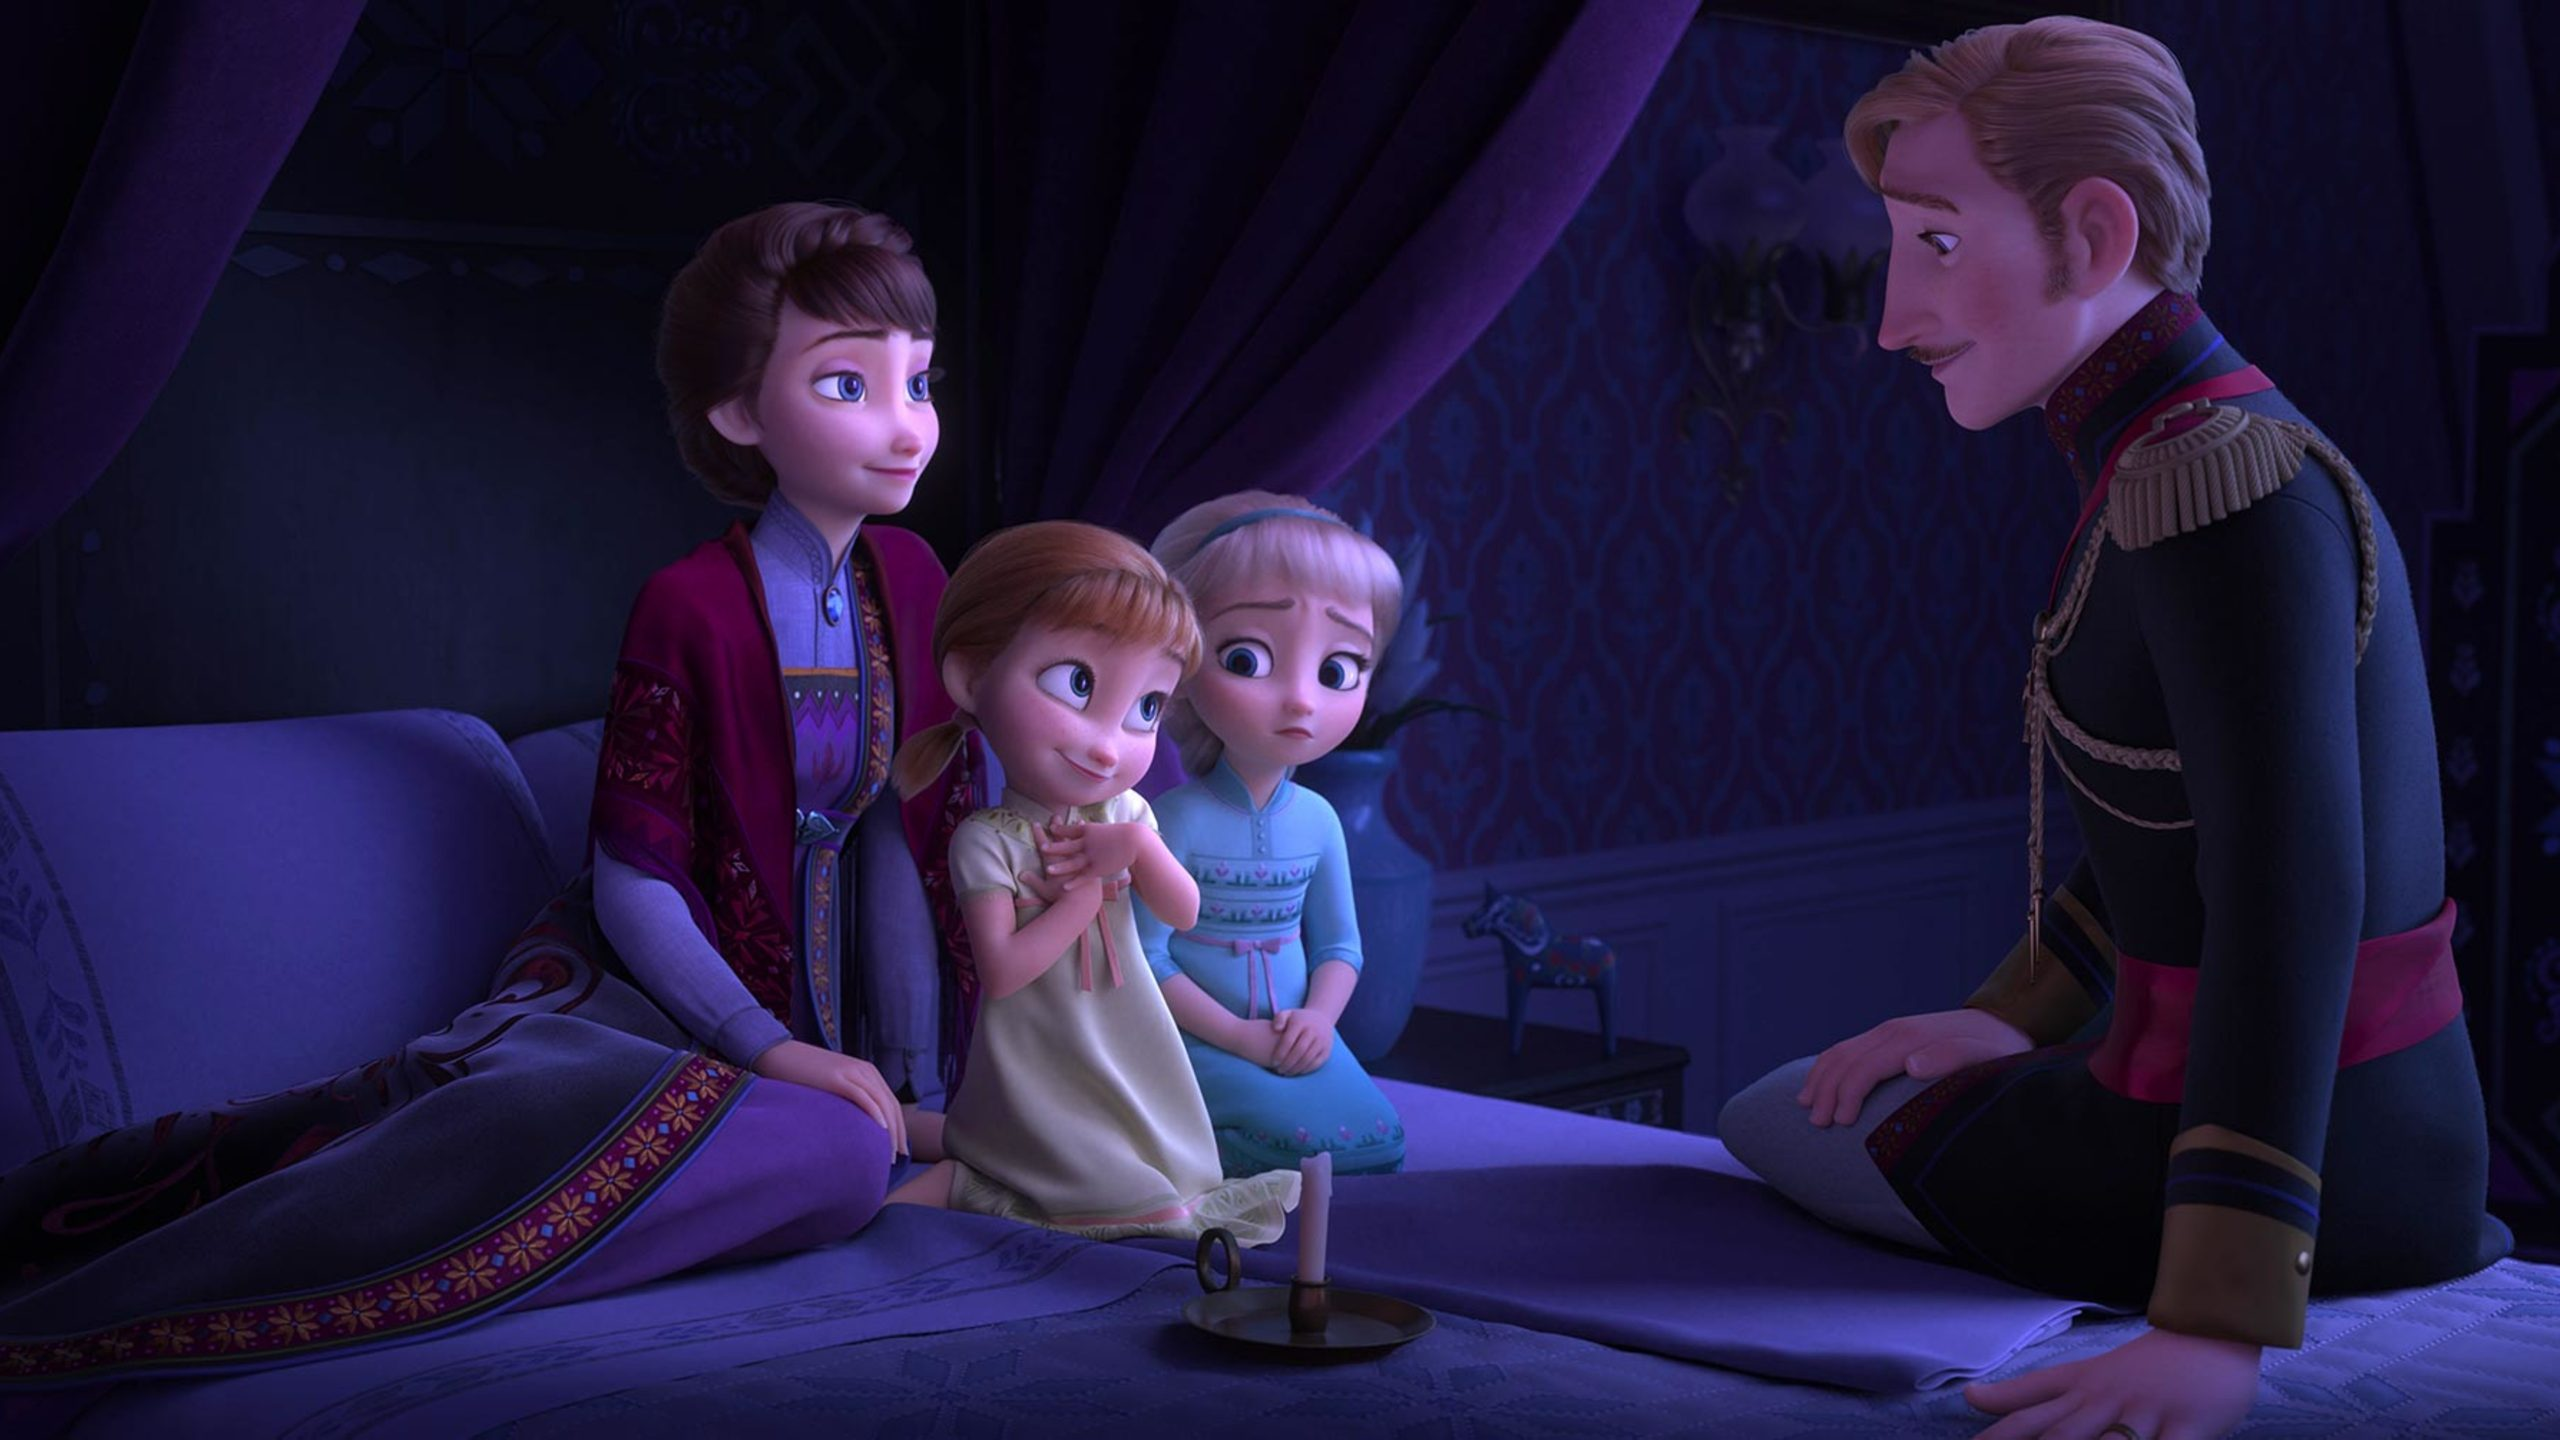 frozen 2 scene anna and elsa with parents 5120x2880